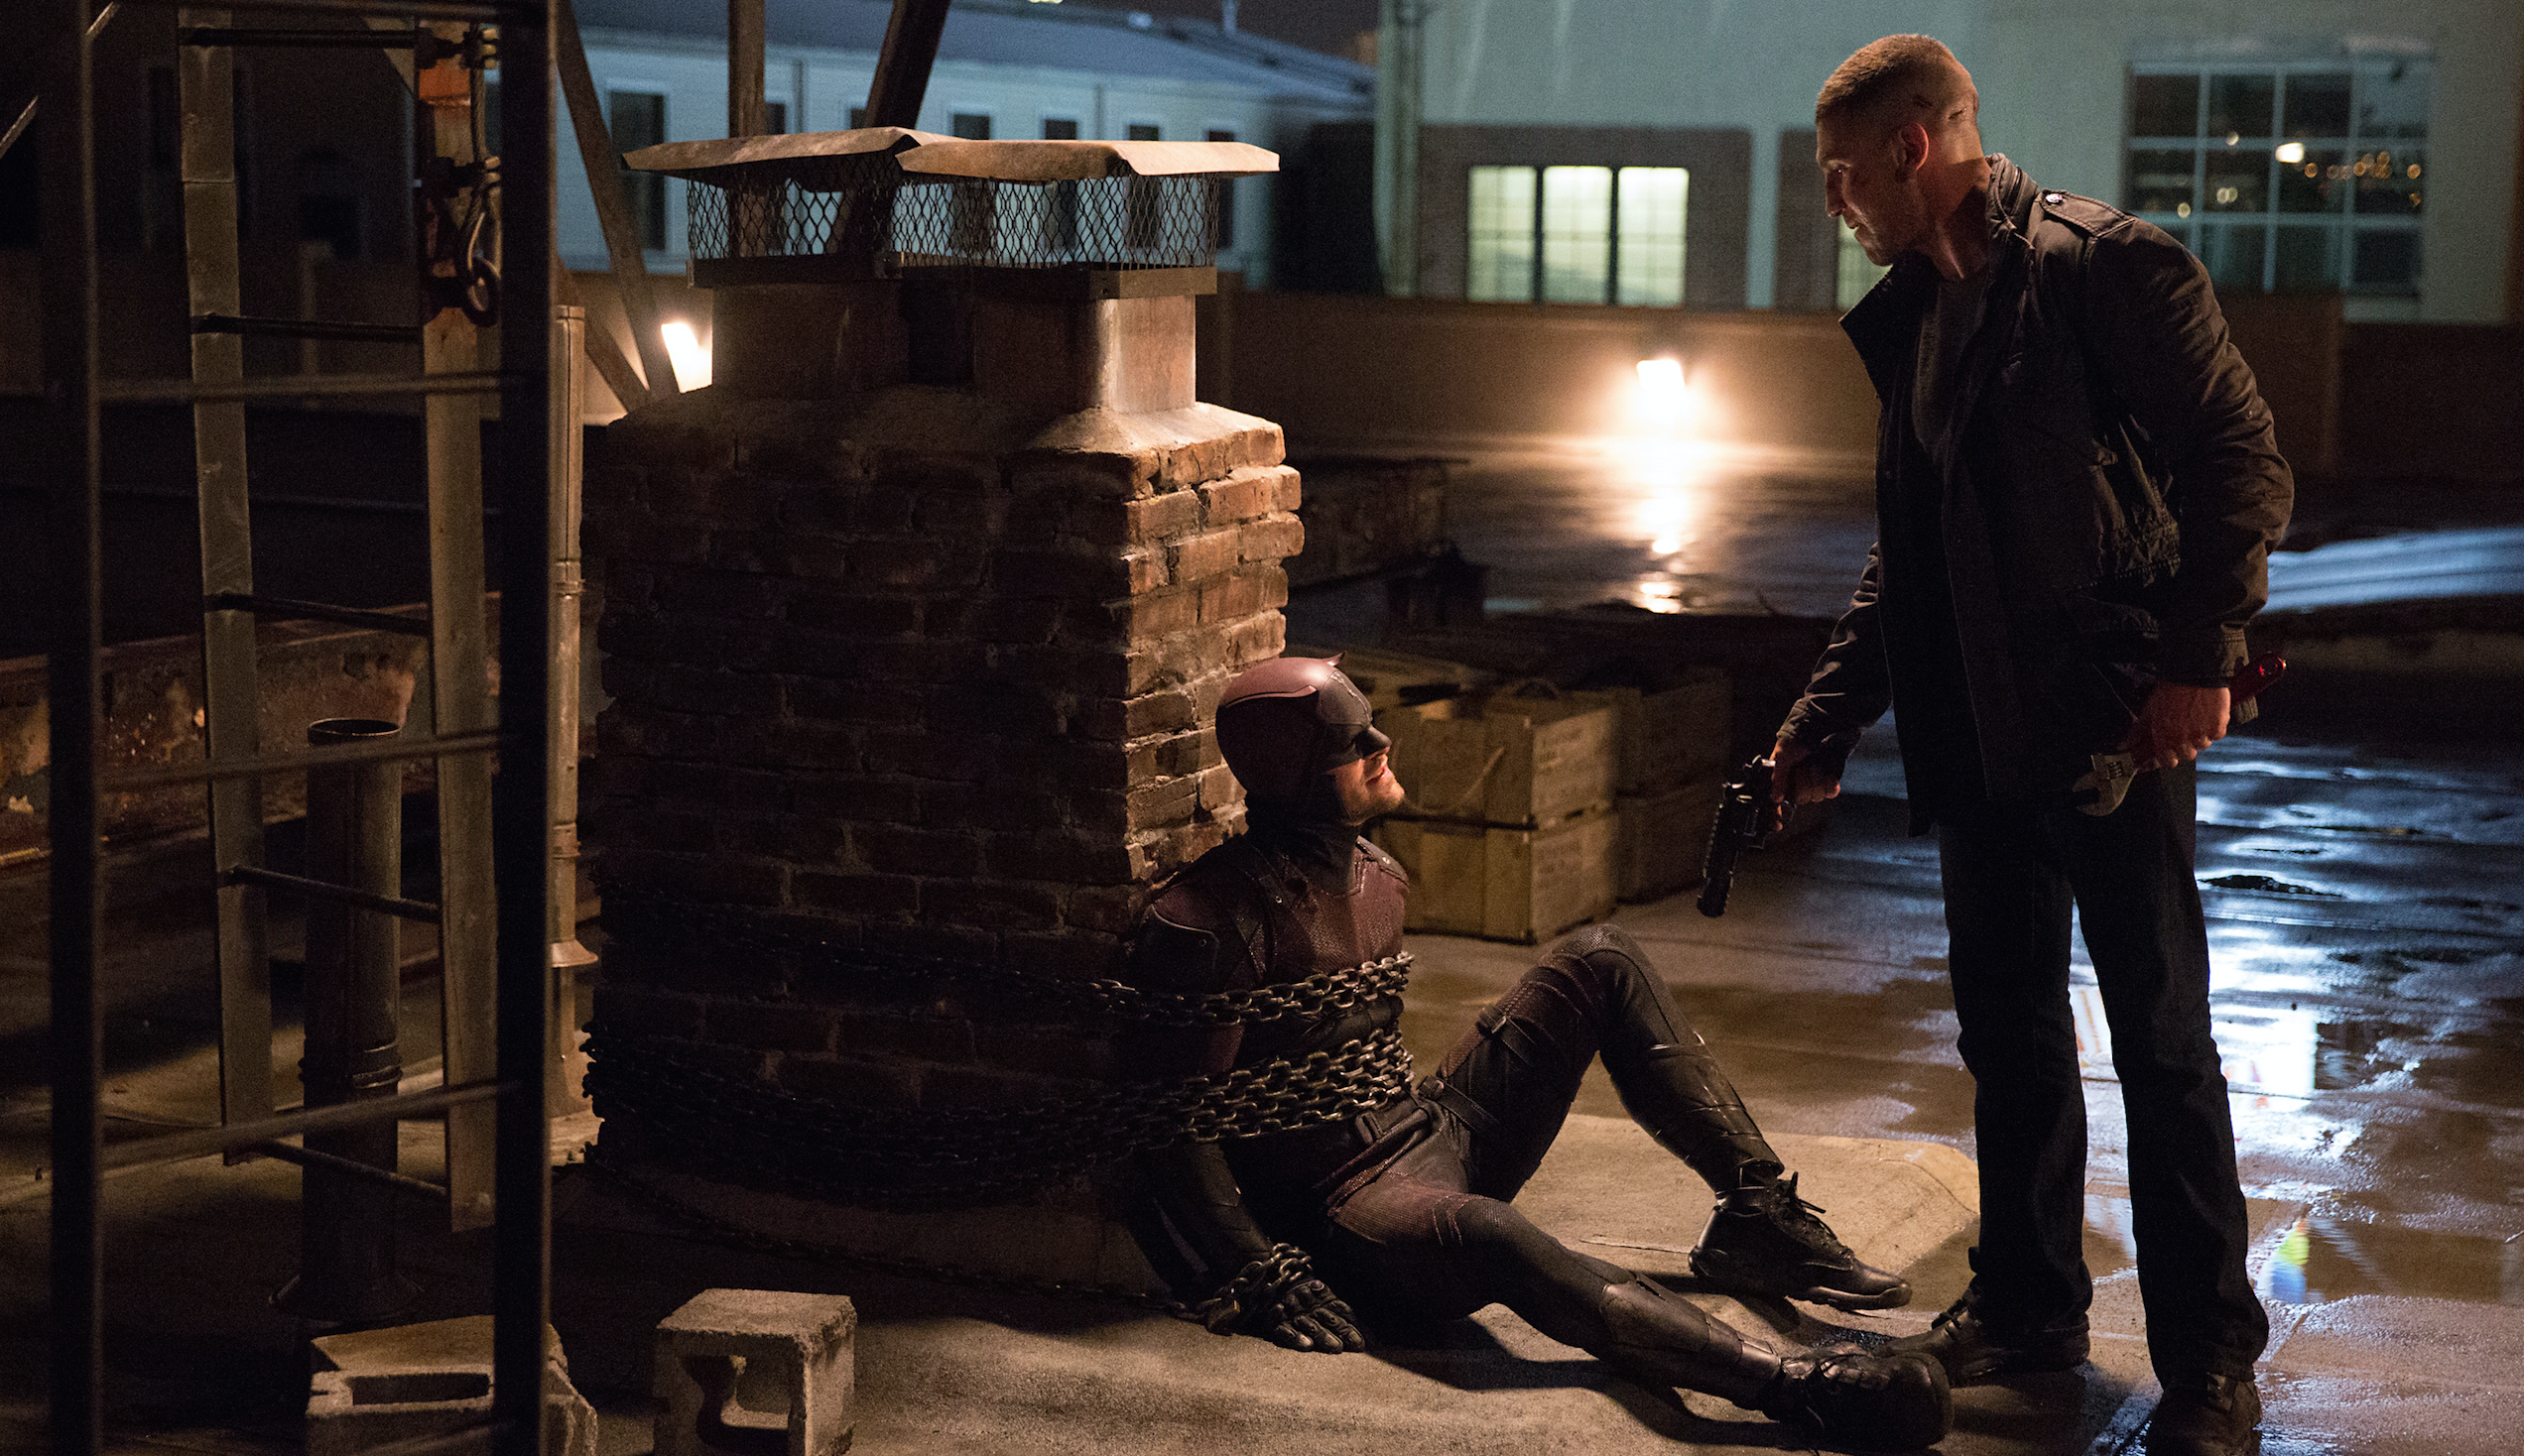 Marvel's Daredevil season 2 review